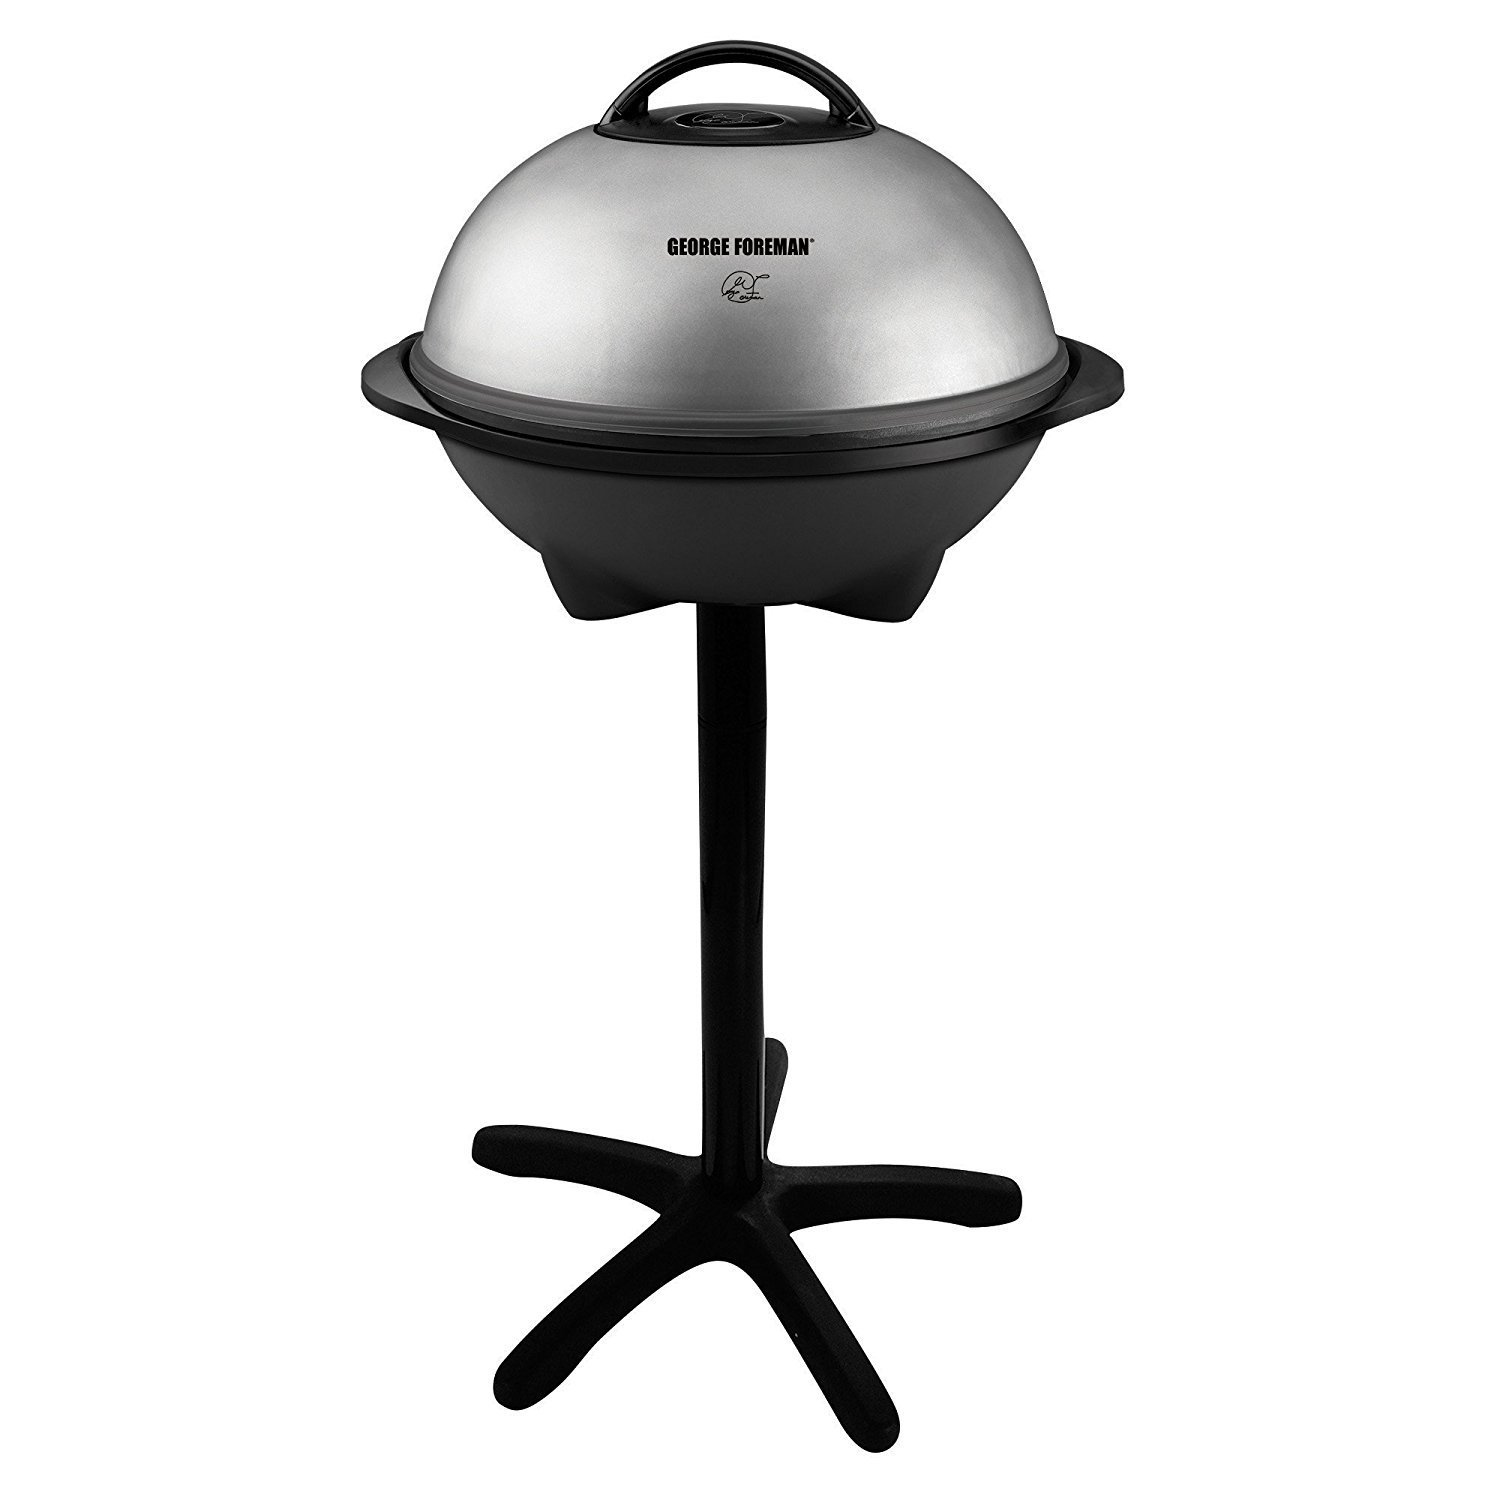 26 Interesting Living Room Décor Ideas Definitive Guide: George Foreman Ggr50b Indoor Outdoor Grill